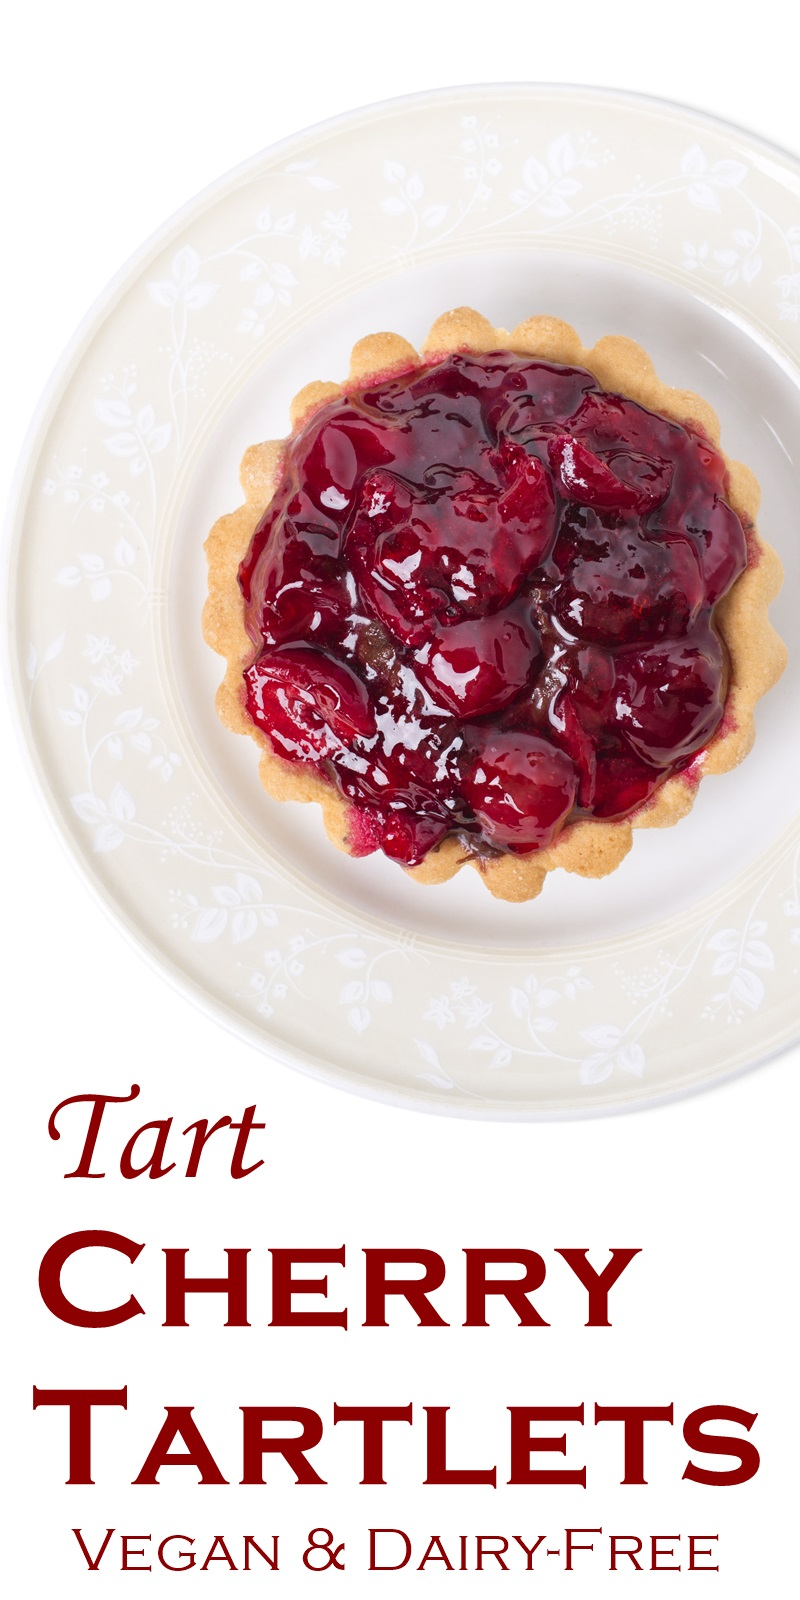 Vegan Tart Cherry Tartlets Recipe - a fun tea time treat. Dairy-free, egg-free, dessert with gluten-free and nut-free options.